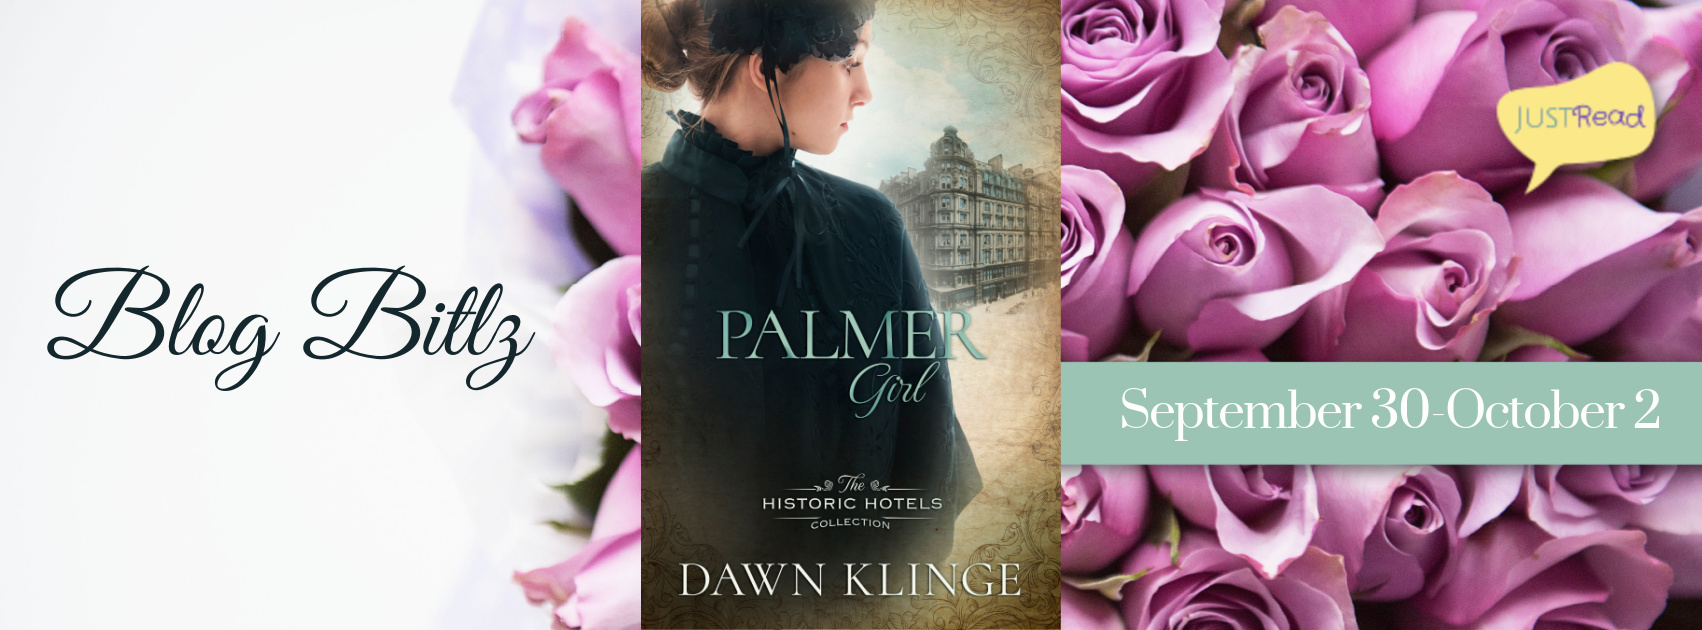 Welcome to the Palmer Girl Blog Blitz & Giveaway!